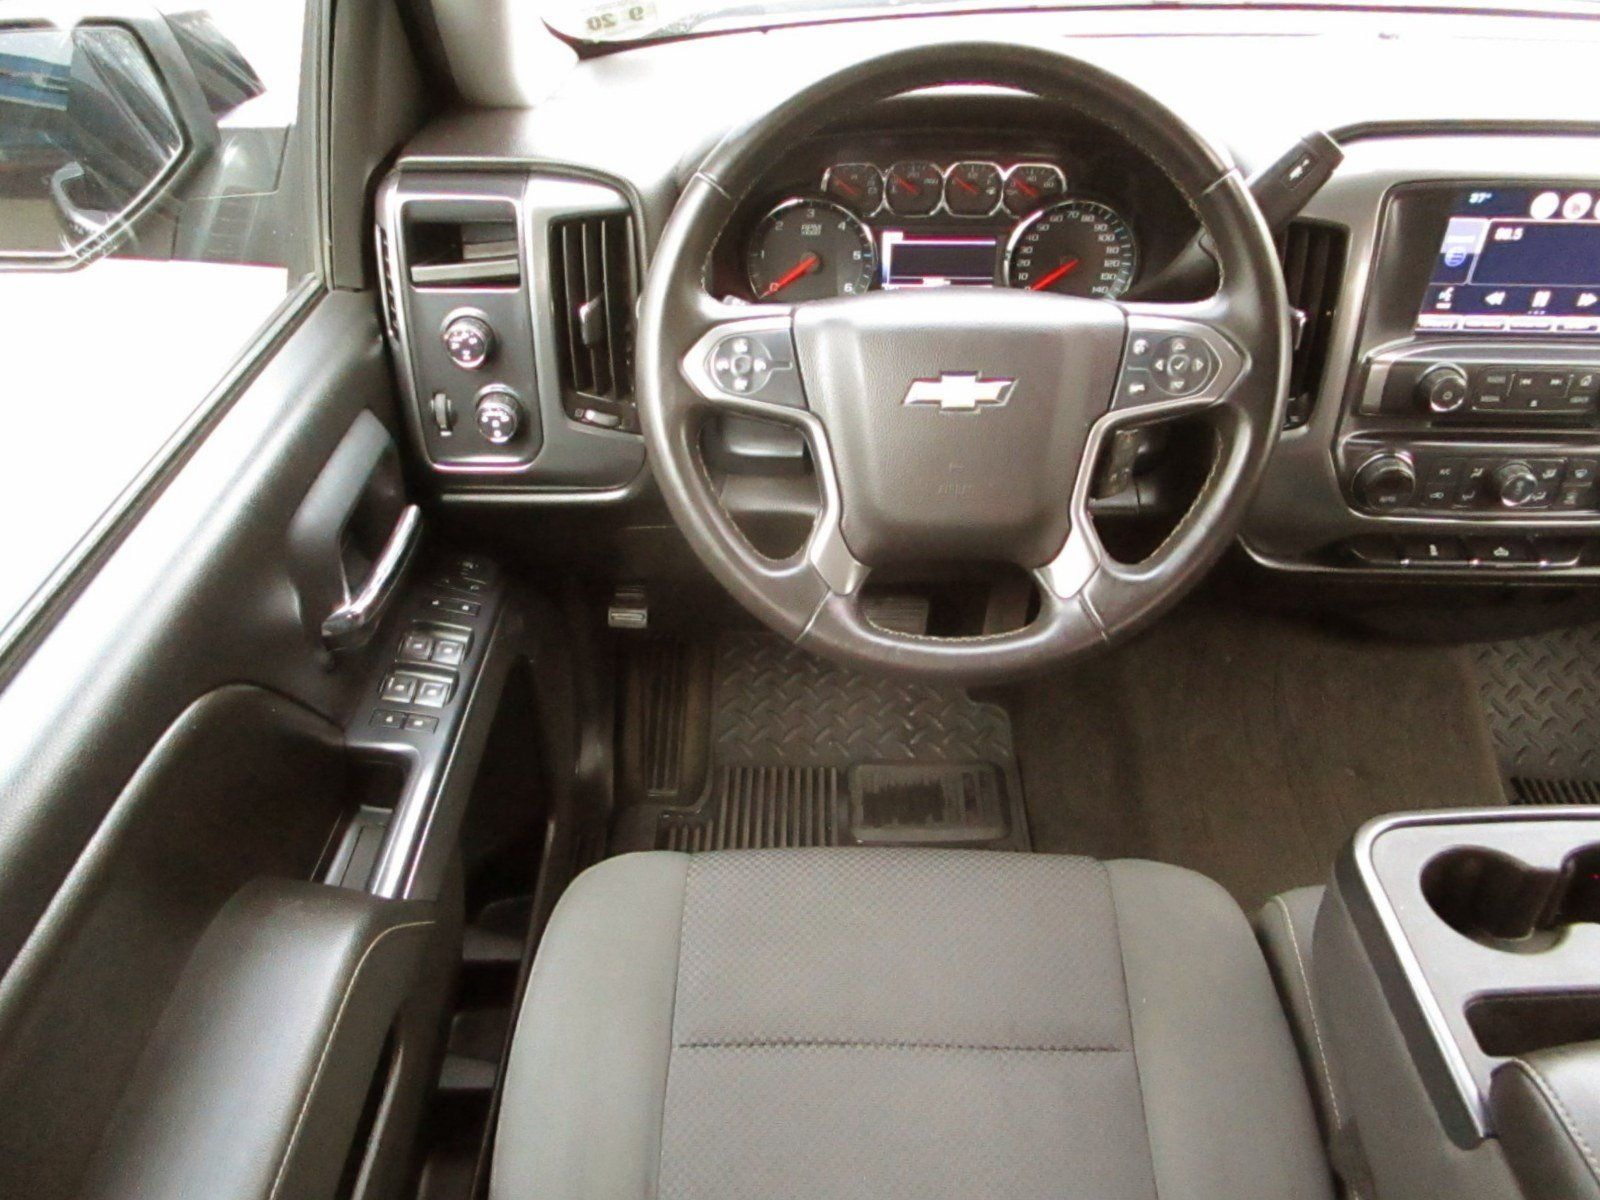 Used 2015 Chevrolet Silverado 1500 Lt For Sale In Hawthorne Nj 07506 Truck Details 507224185 Autotrader Used Trucks For Sale 2015 Chevrolet Silverado 1500